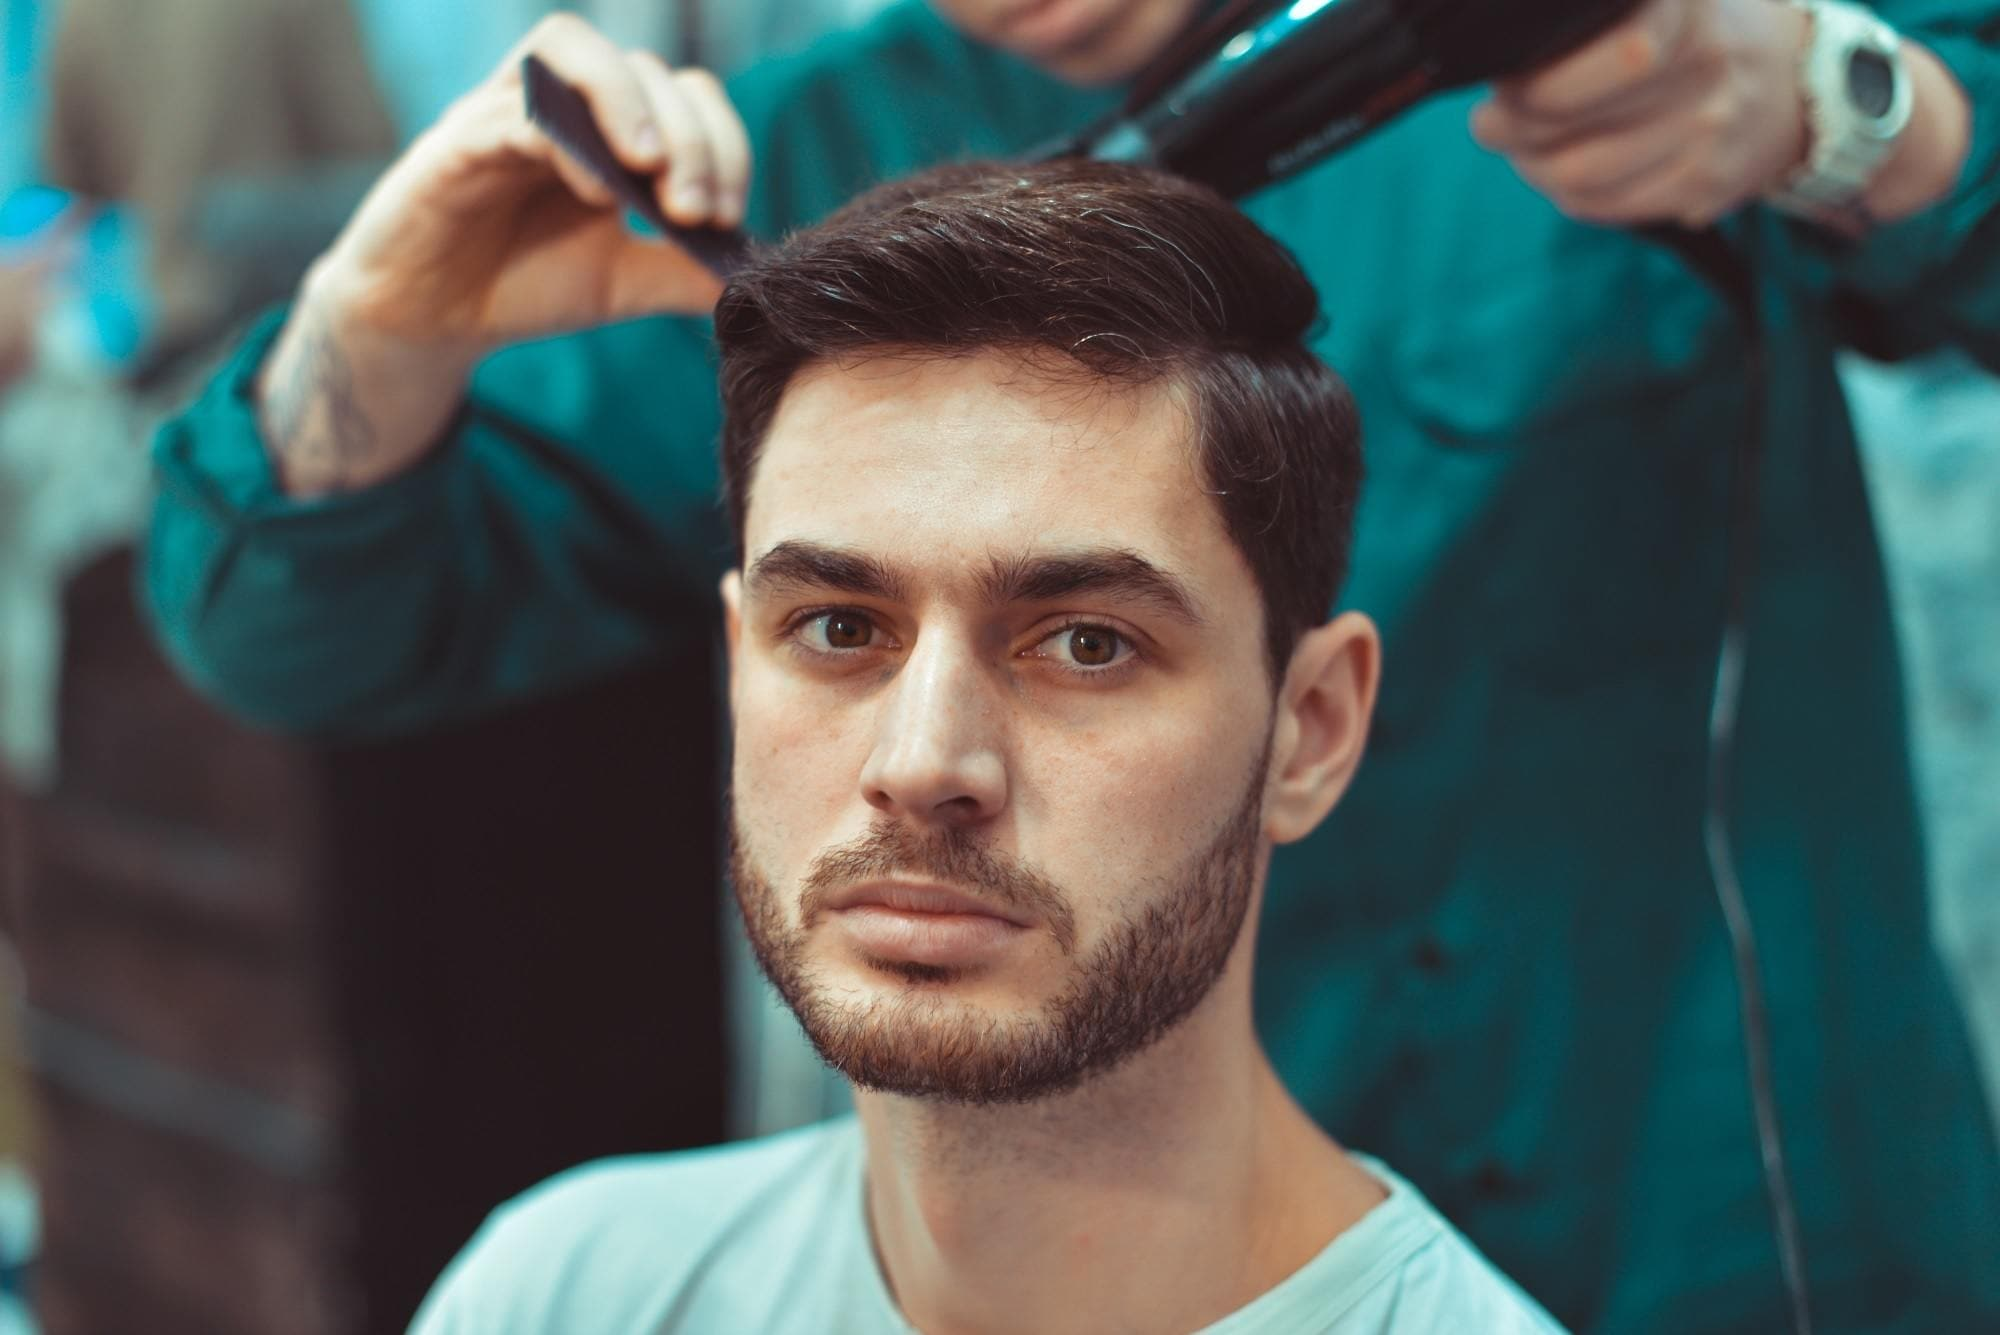 Fathers day haircuts - High and tight shutterstock